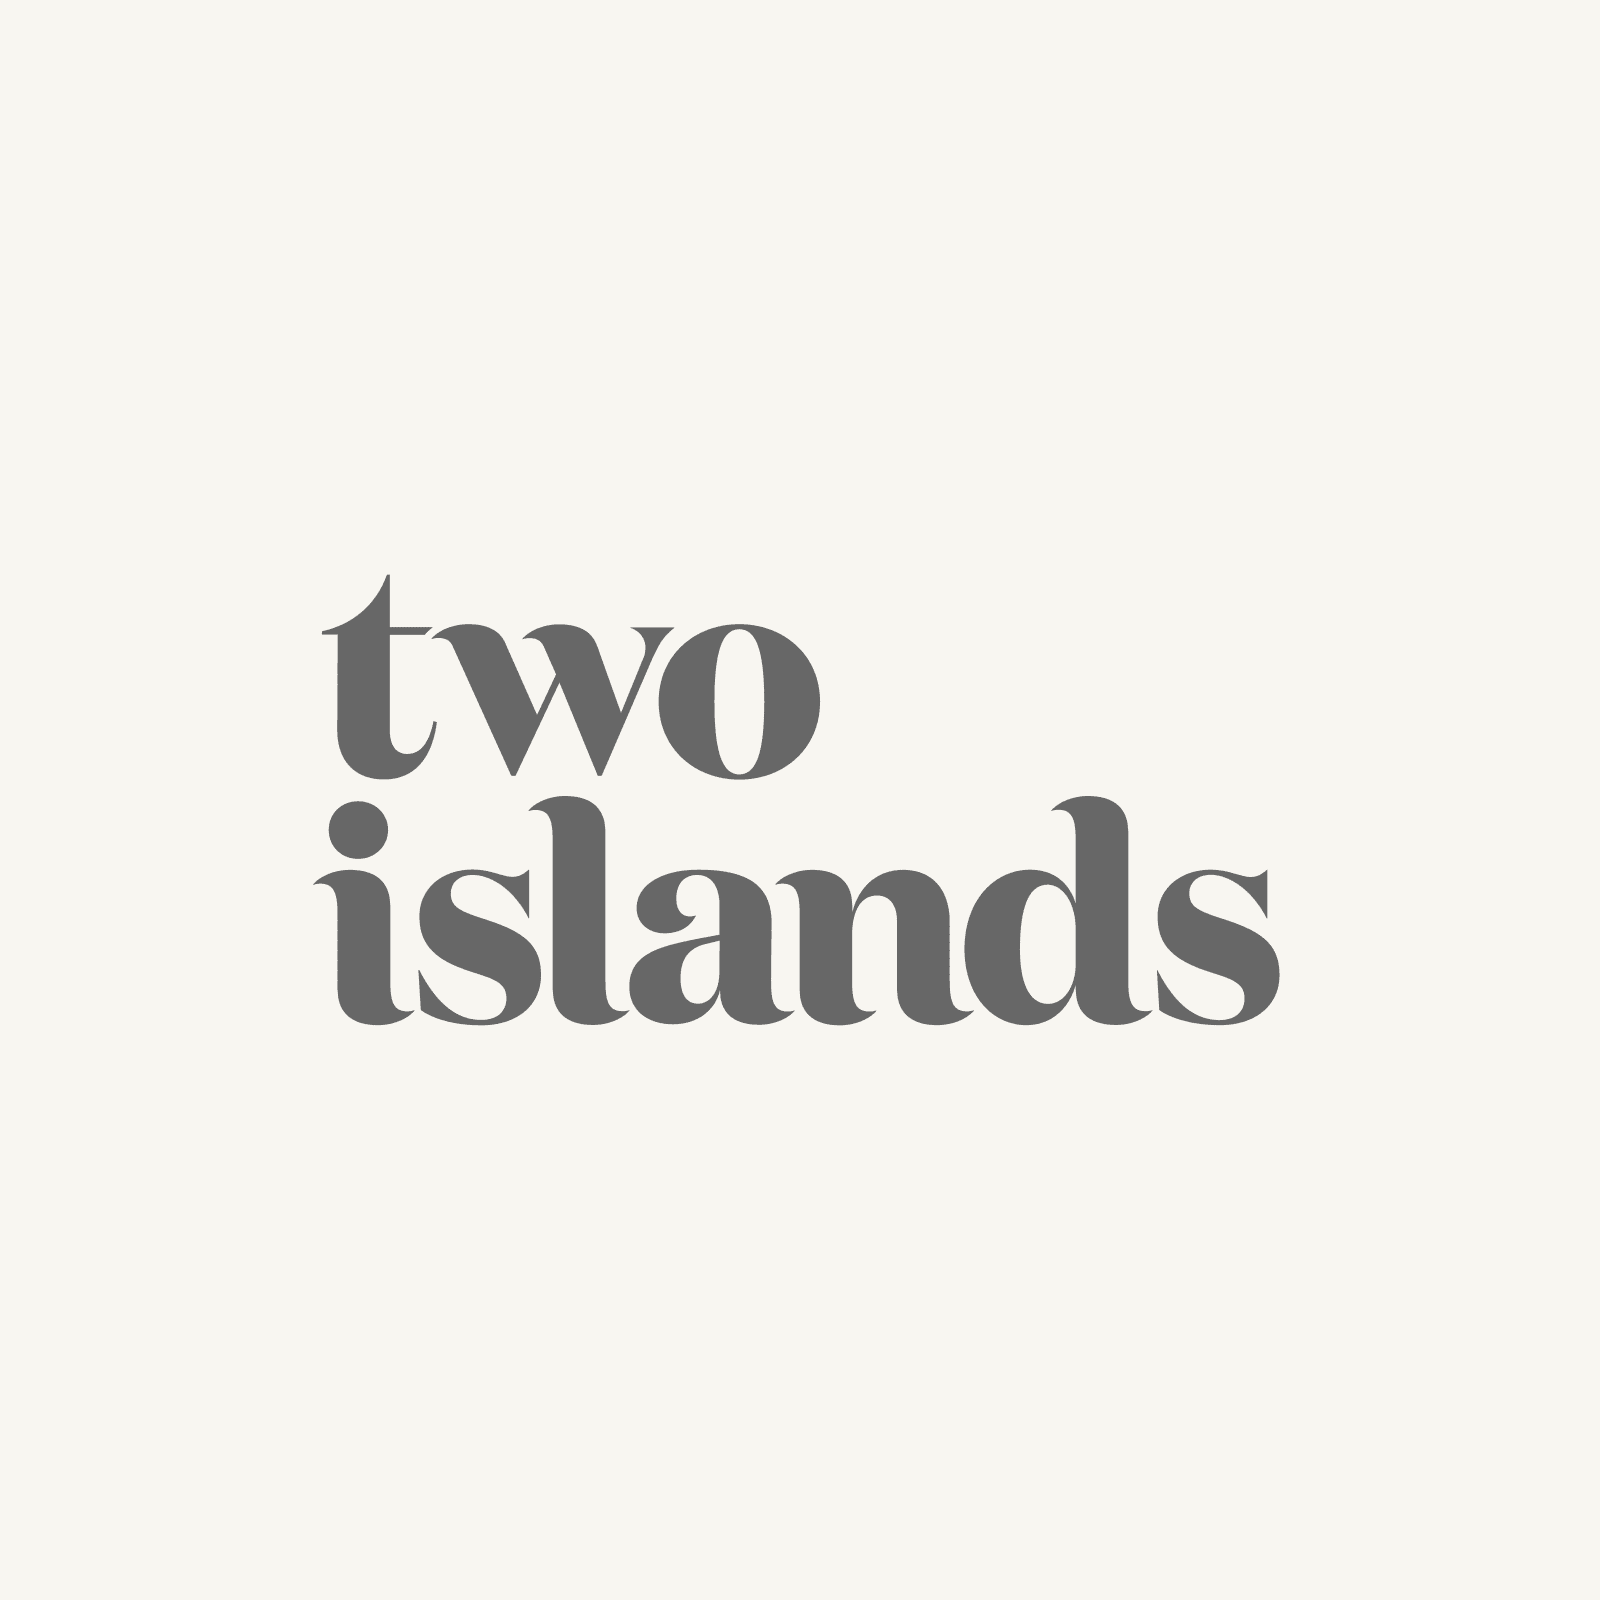 Yuya French appointed Supply Chain Manager at Two Islands